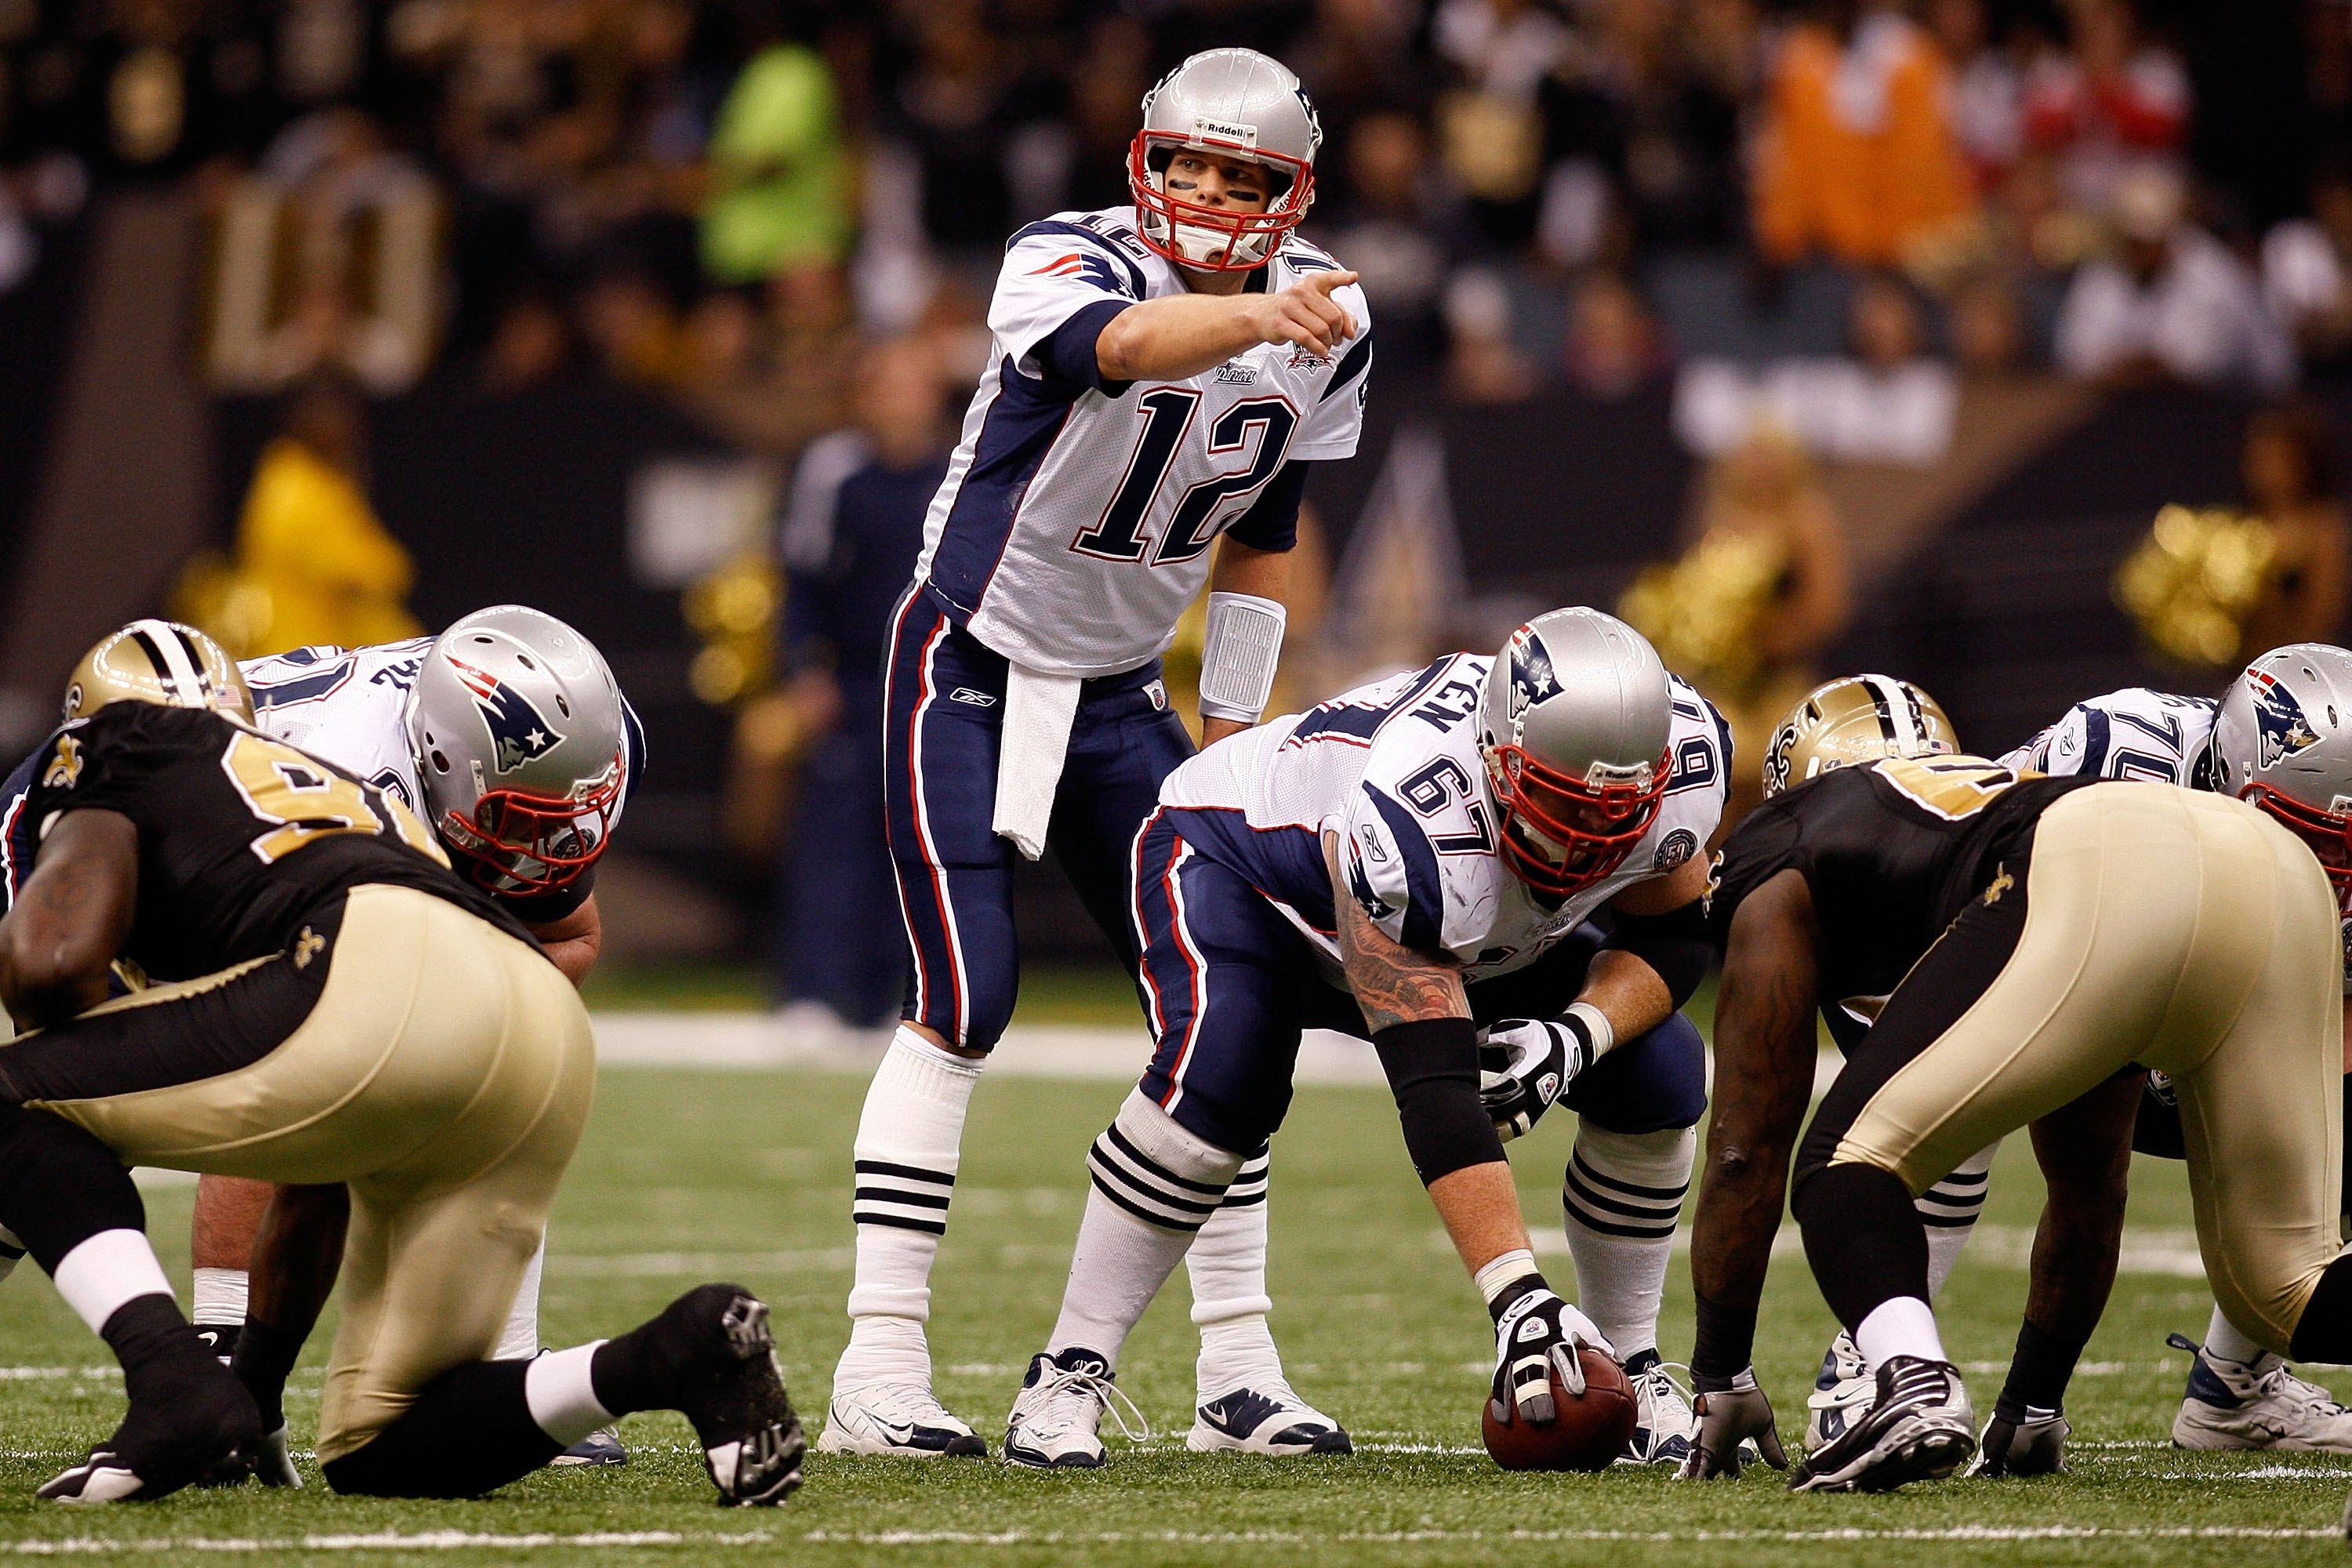 NEW ORLEANS - NOVEMBER 30:  Tom Brady #12 of the New England Patriots against the New Orleans Saints at the Louisiana Superdome on November 30, 2009  in New Orleans, Louisiana.  (Photo by Chris Graythen/Getty Images)